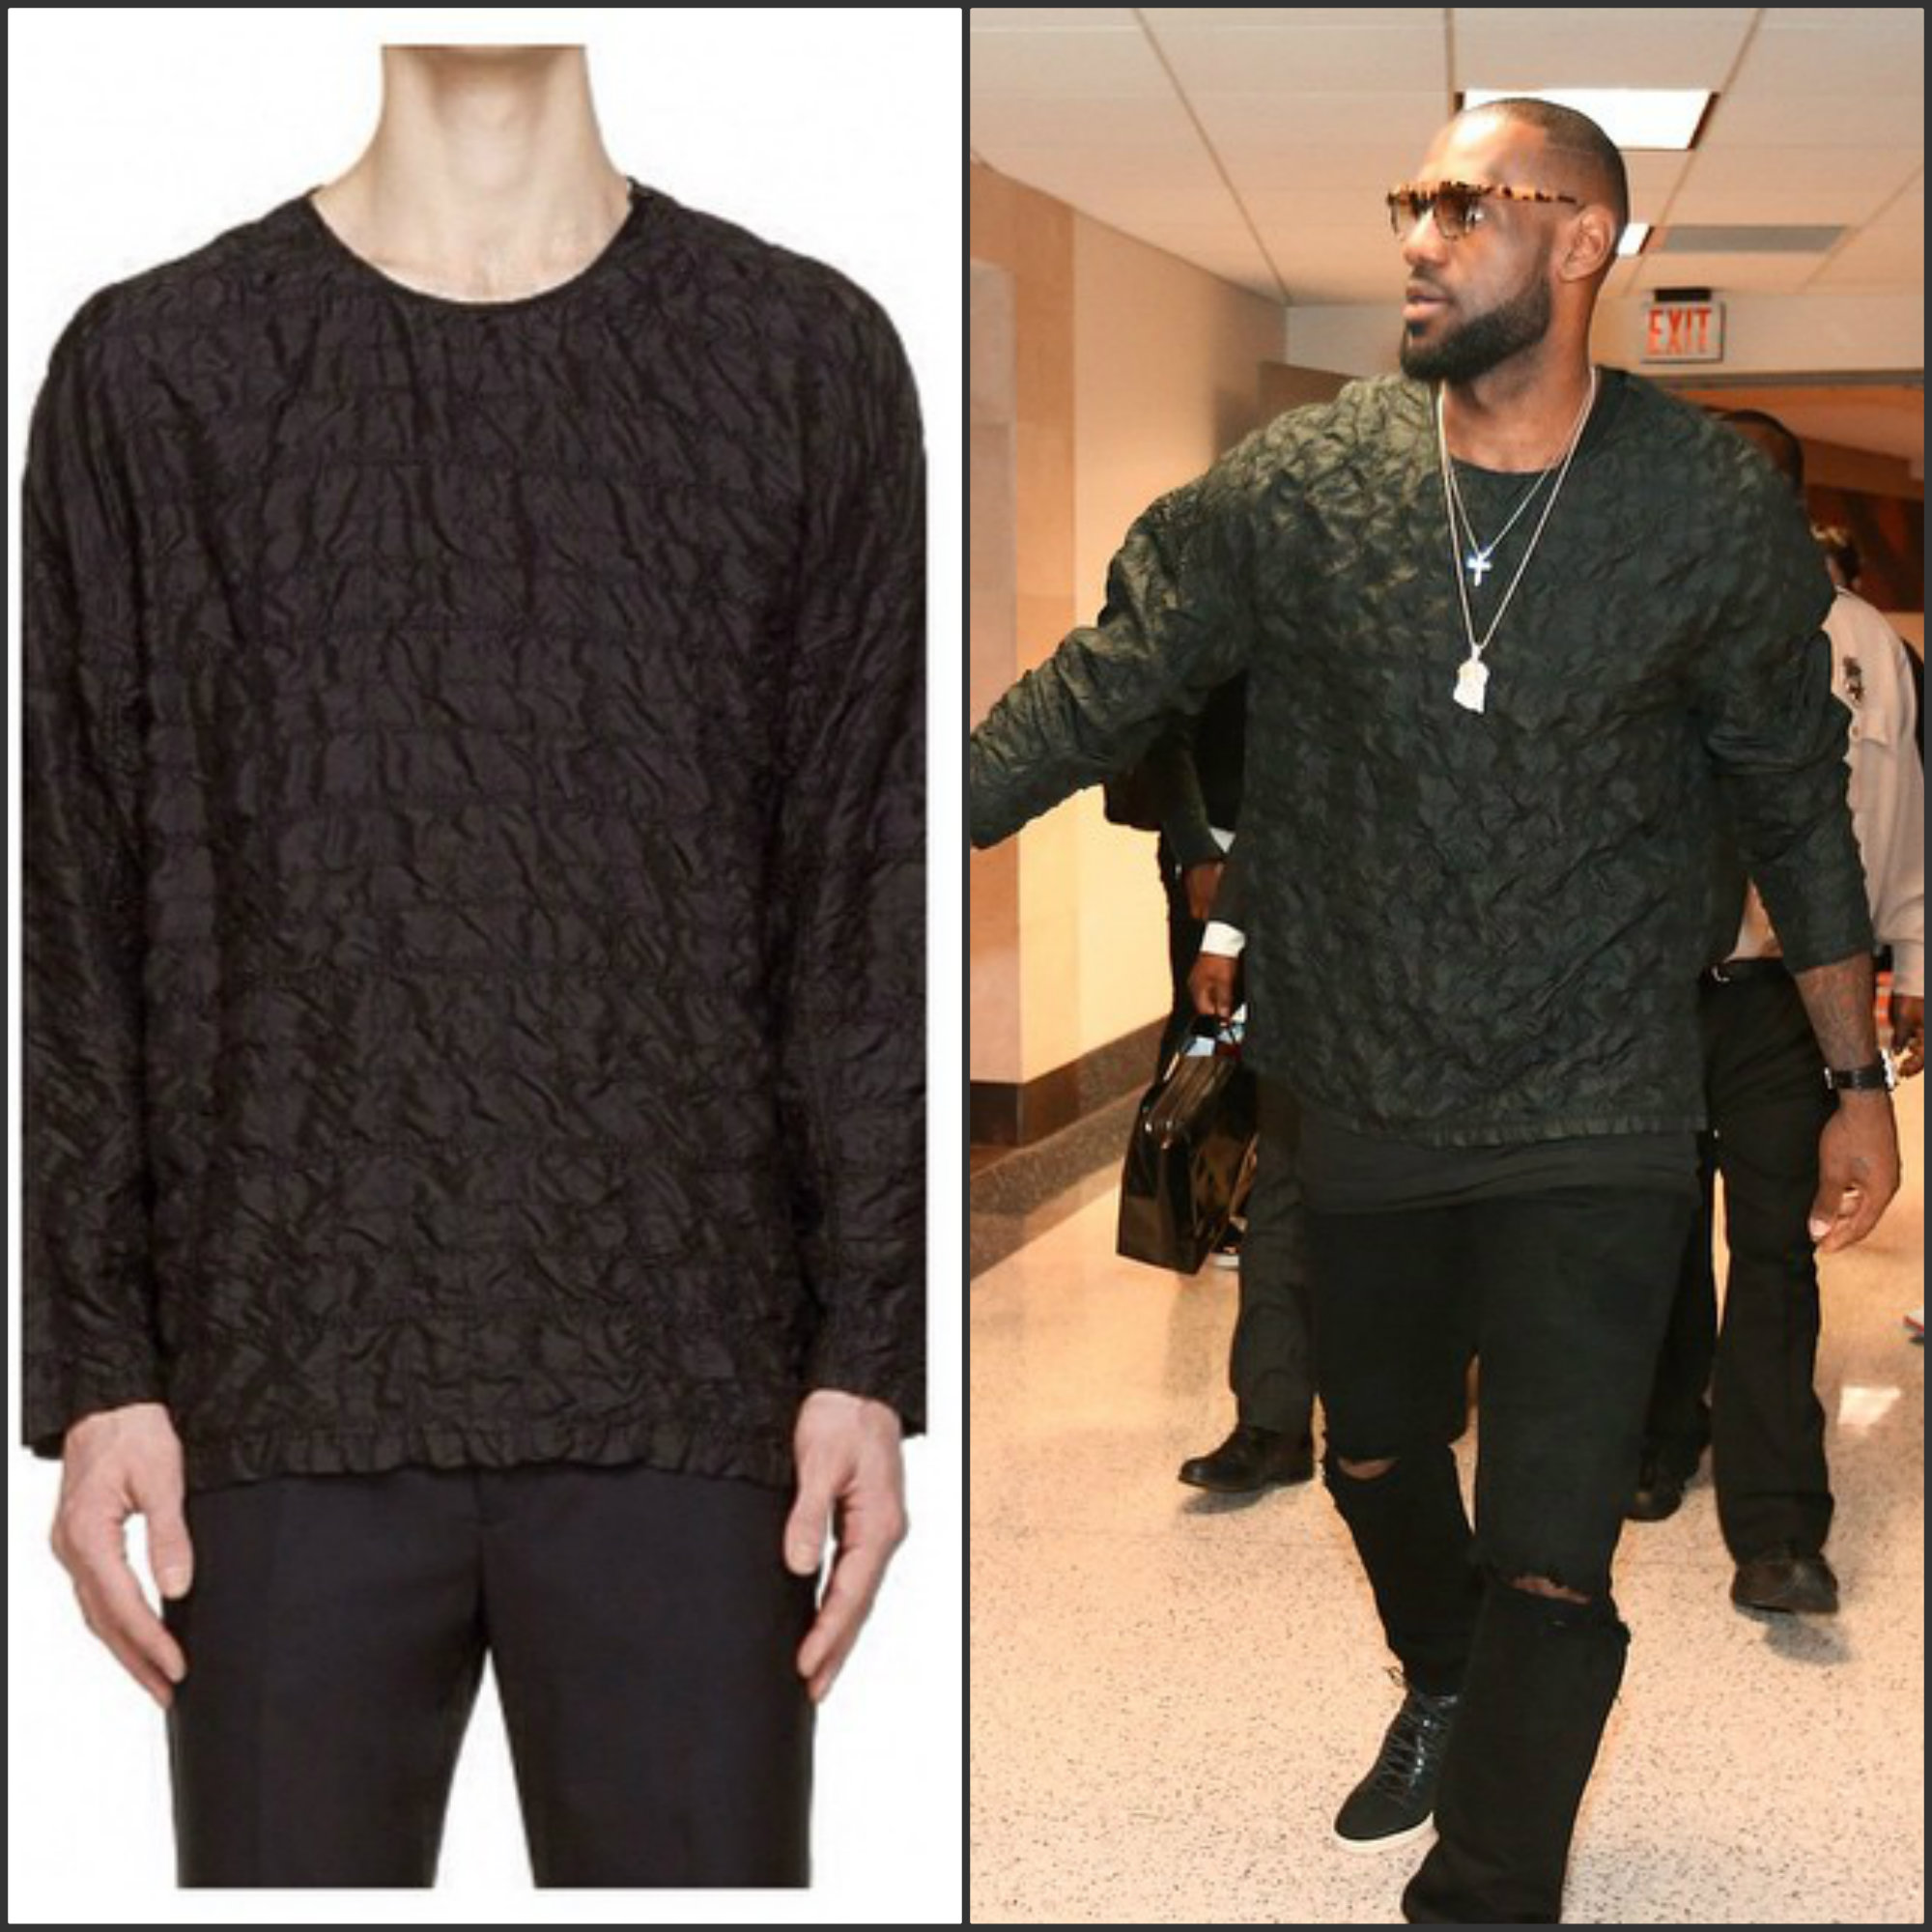 lebron-james-3-1-phillip-lim-stitched-silk-shirt-nba-game-5